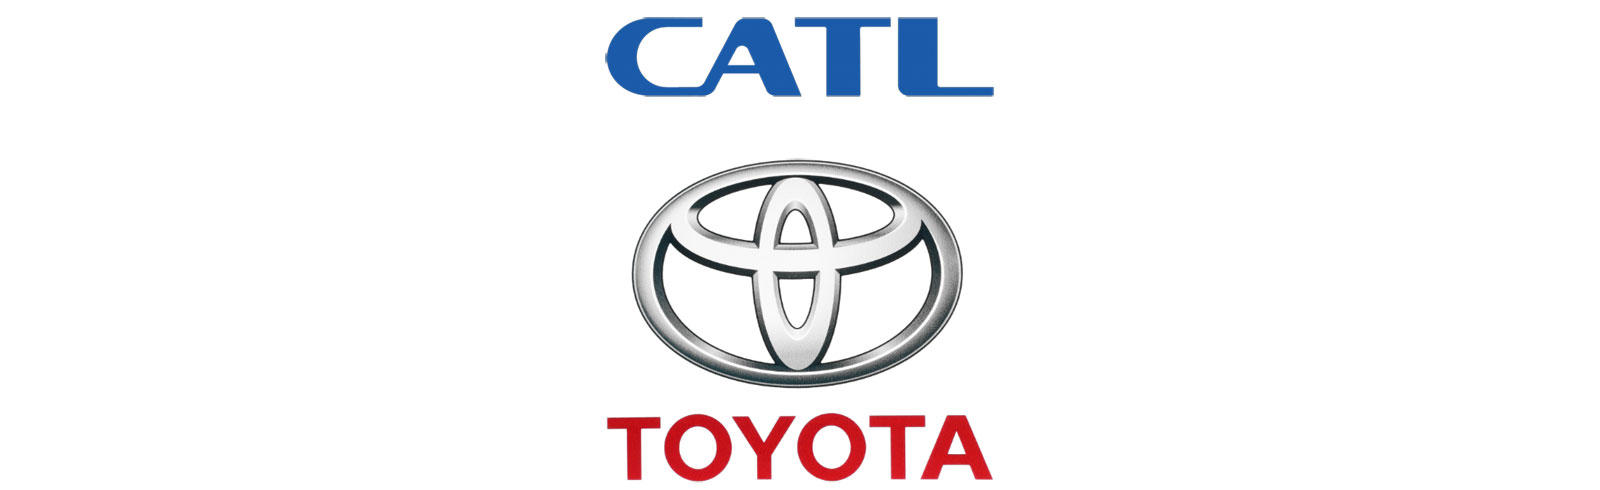 Toyota and CATL enter an agreement for a steady supply and development of EV batteries